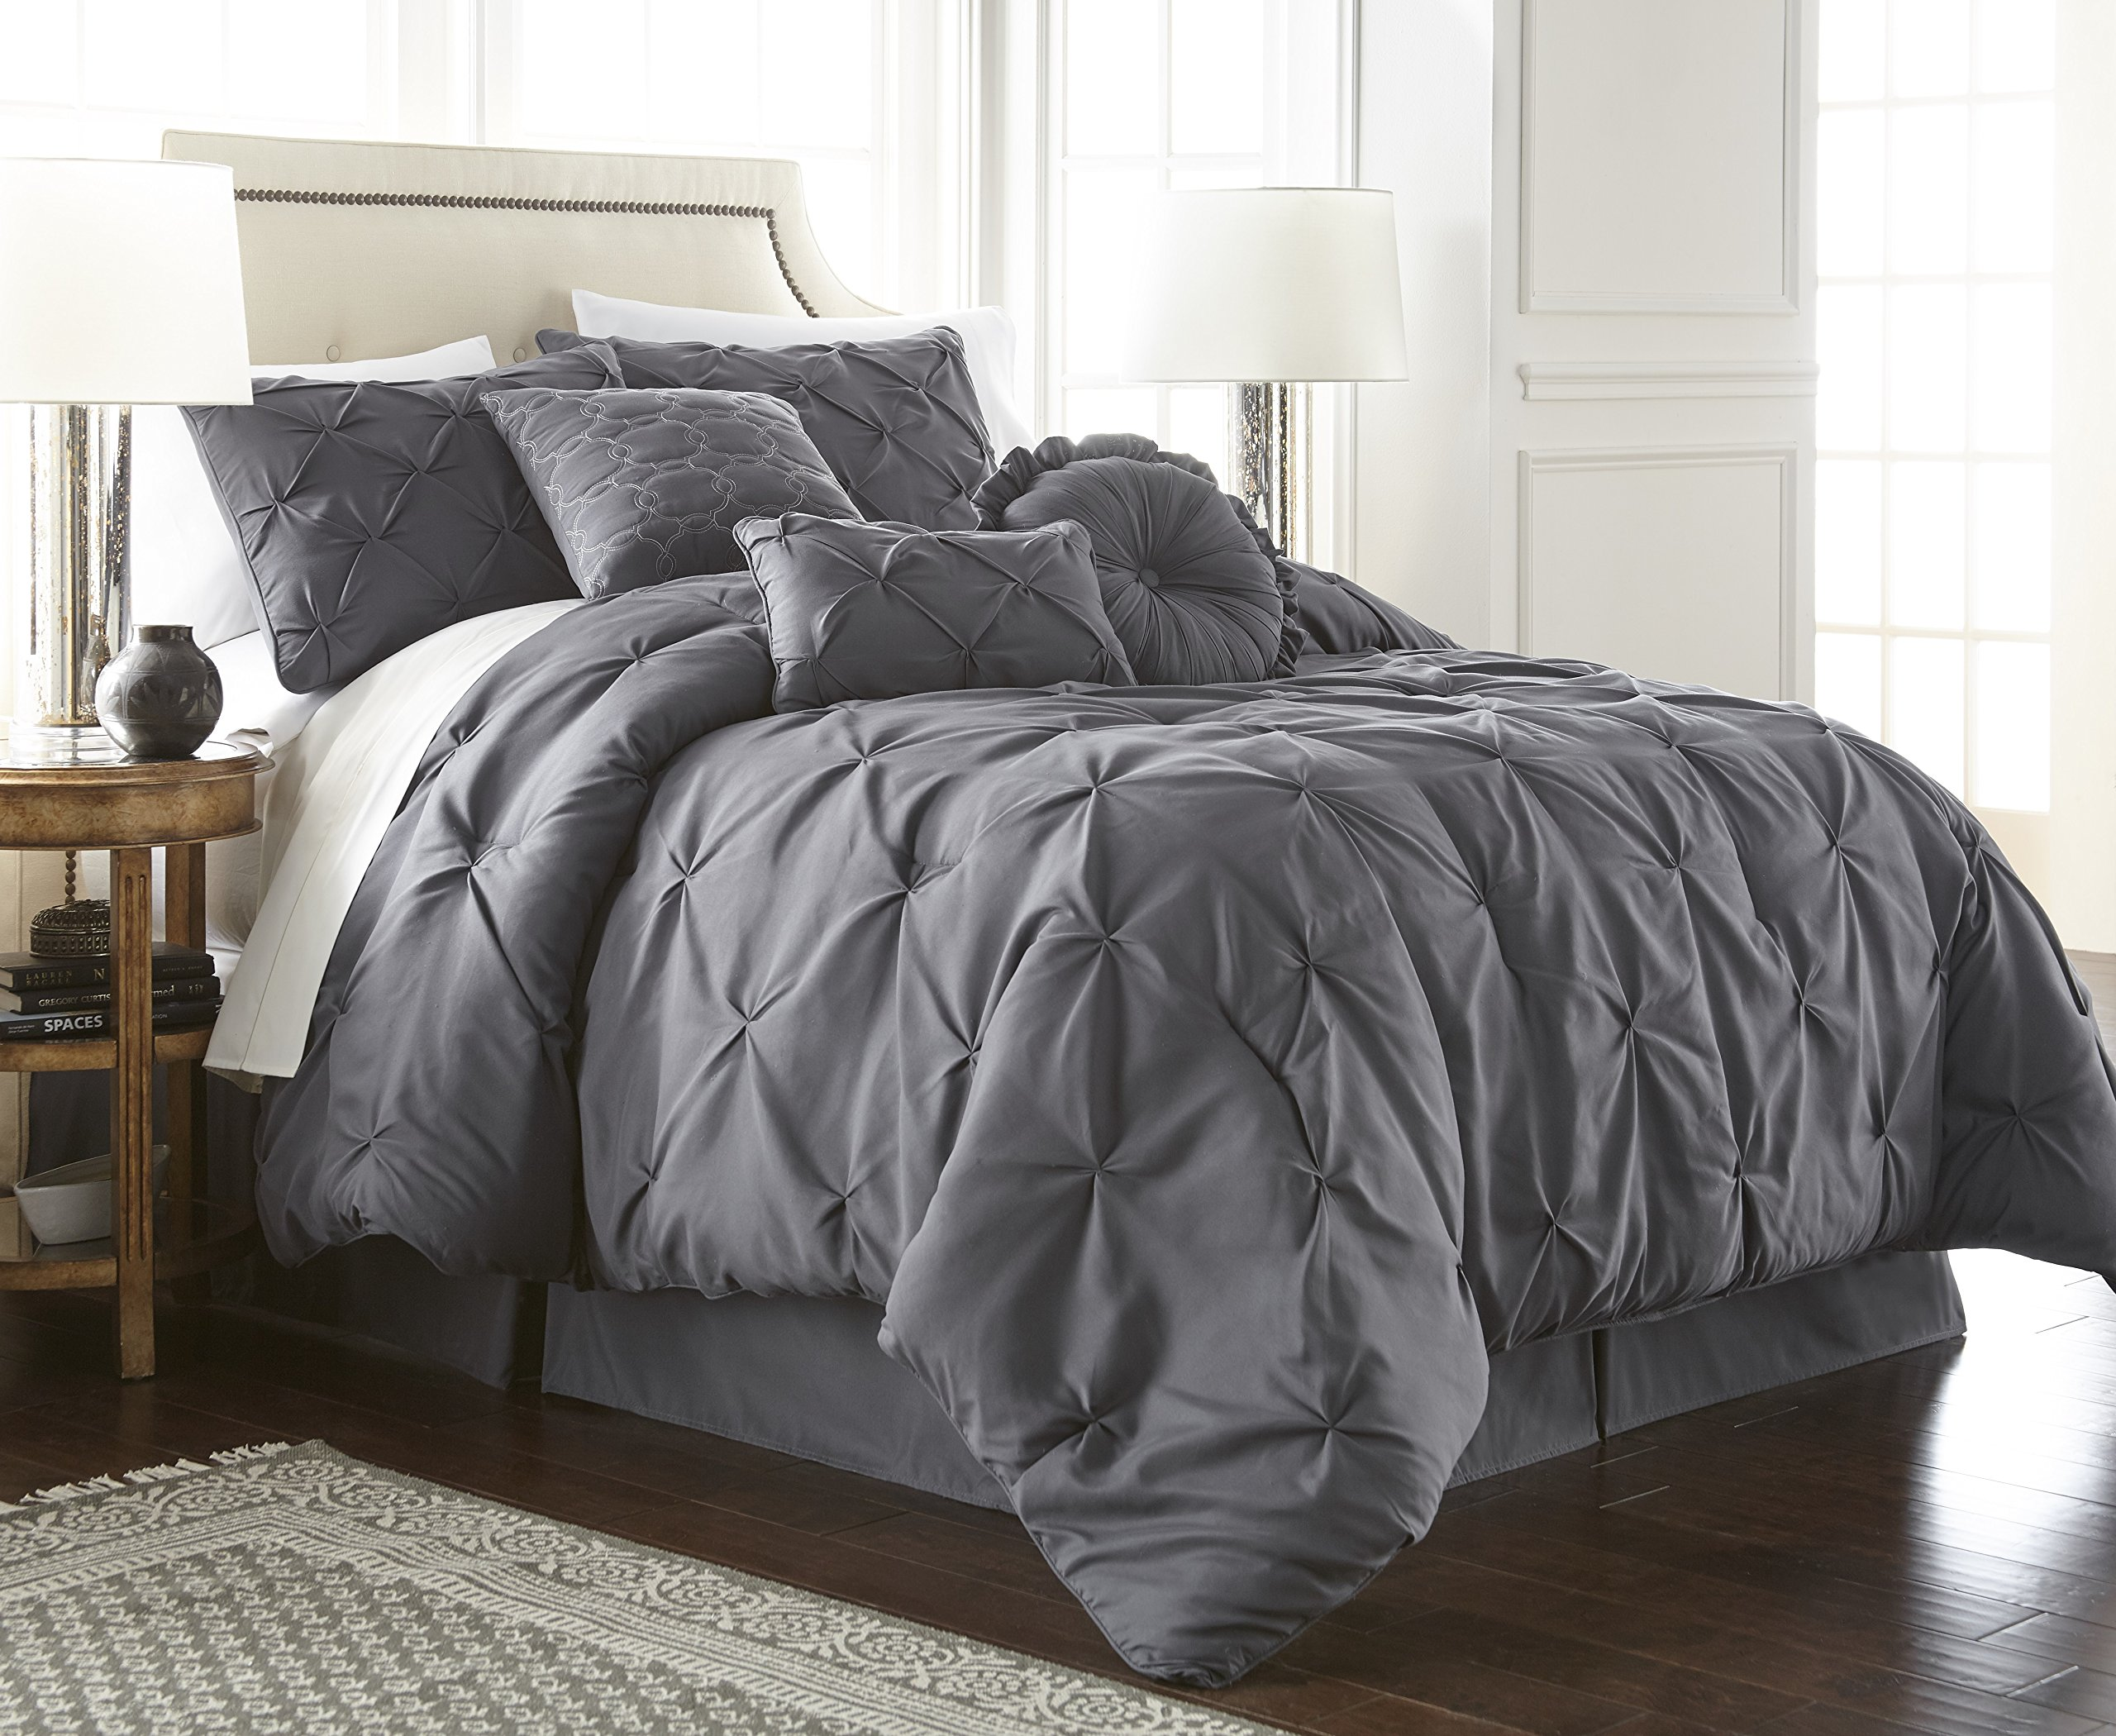 woman bedding collection new how the hotel comforter pioneer is line and womans pretty collections debuts